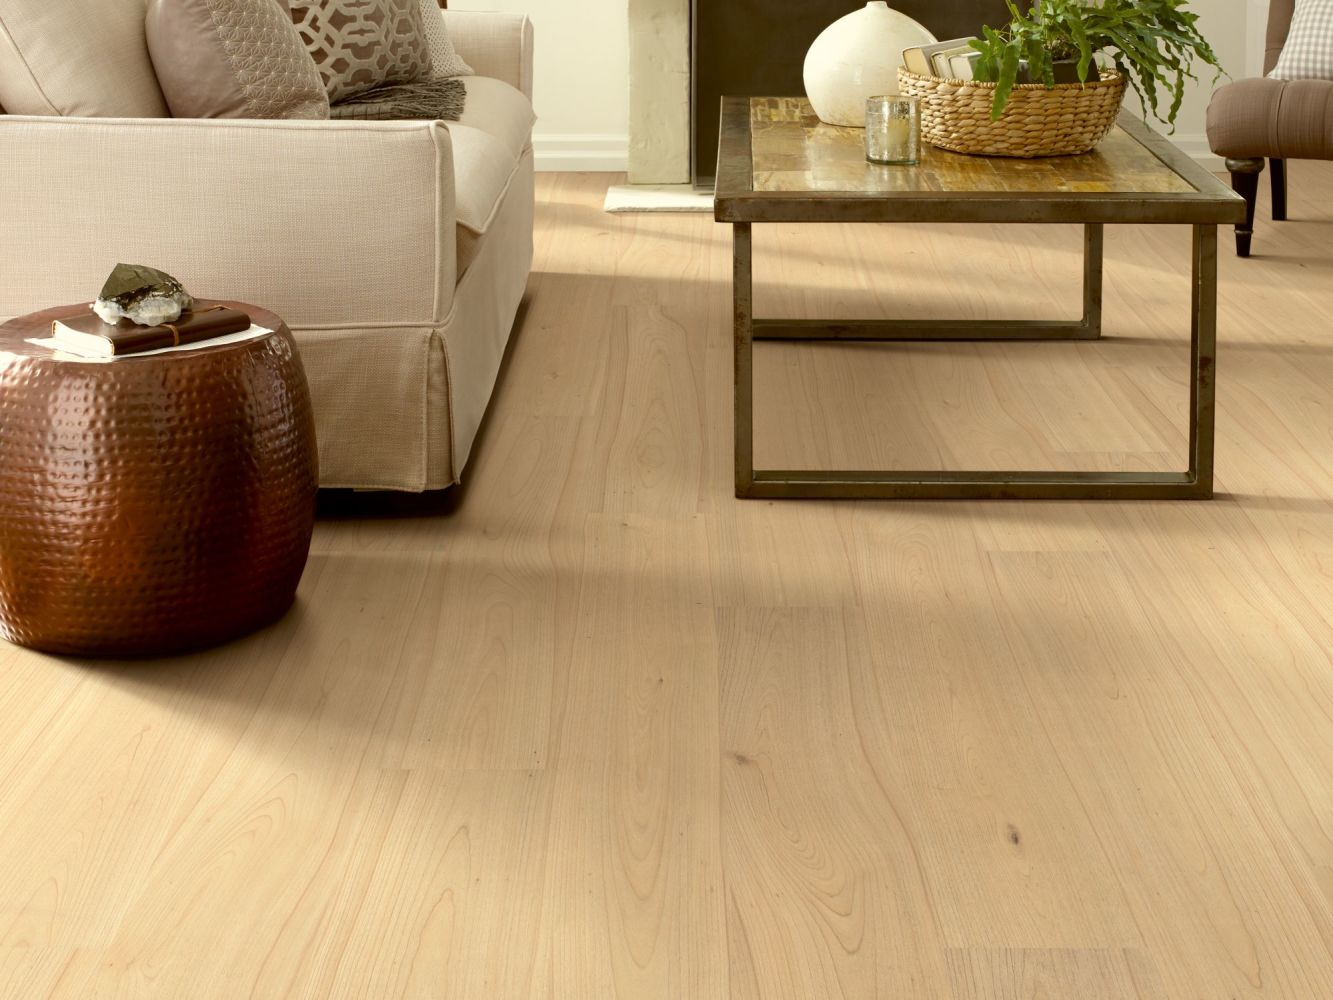 Shaw Floors Resilient Residential Prodigy Hdr Plus Hygge 02025_2038V